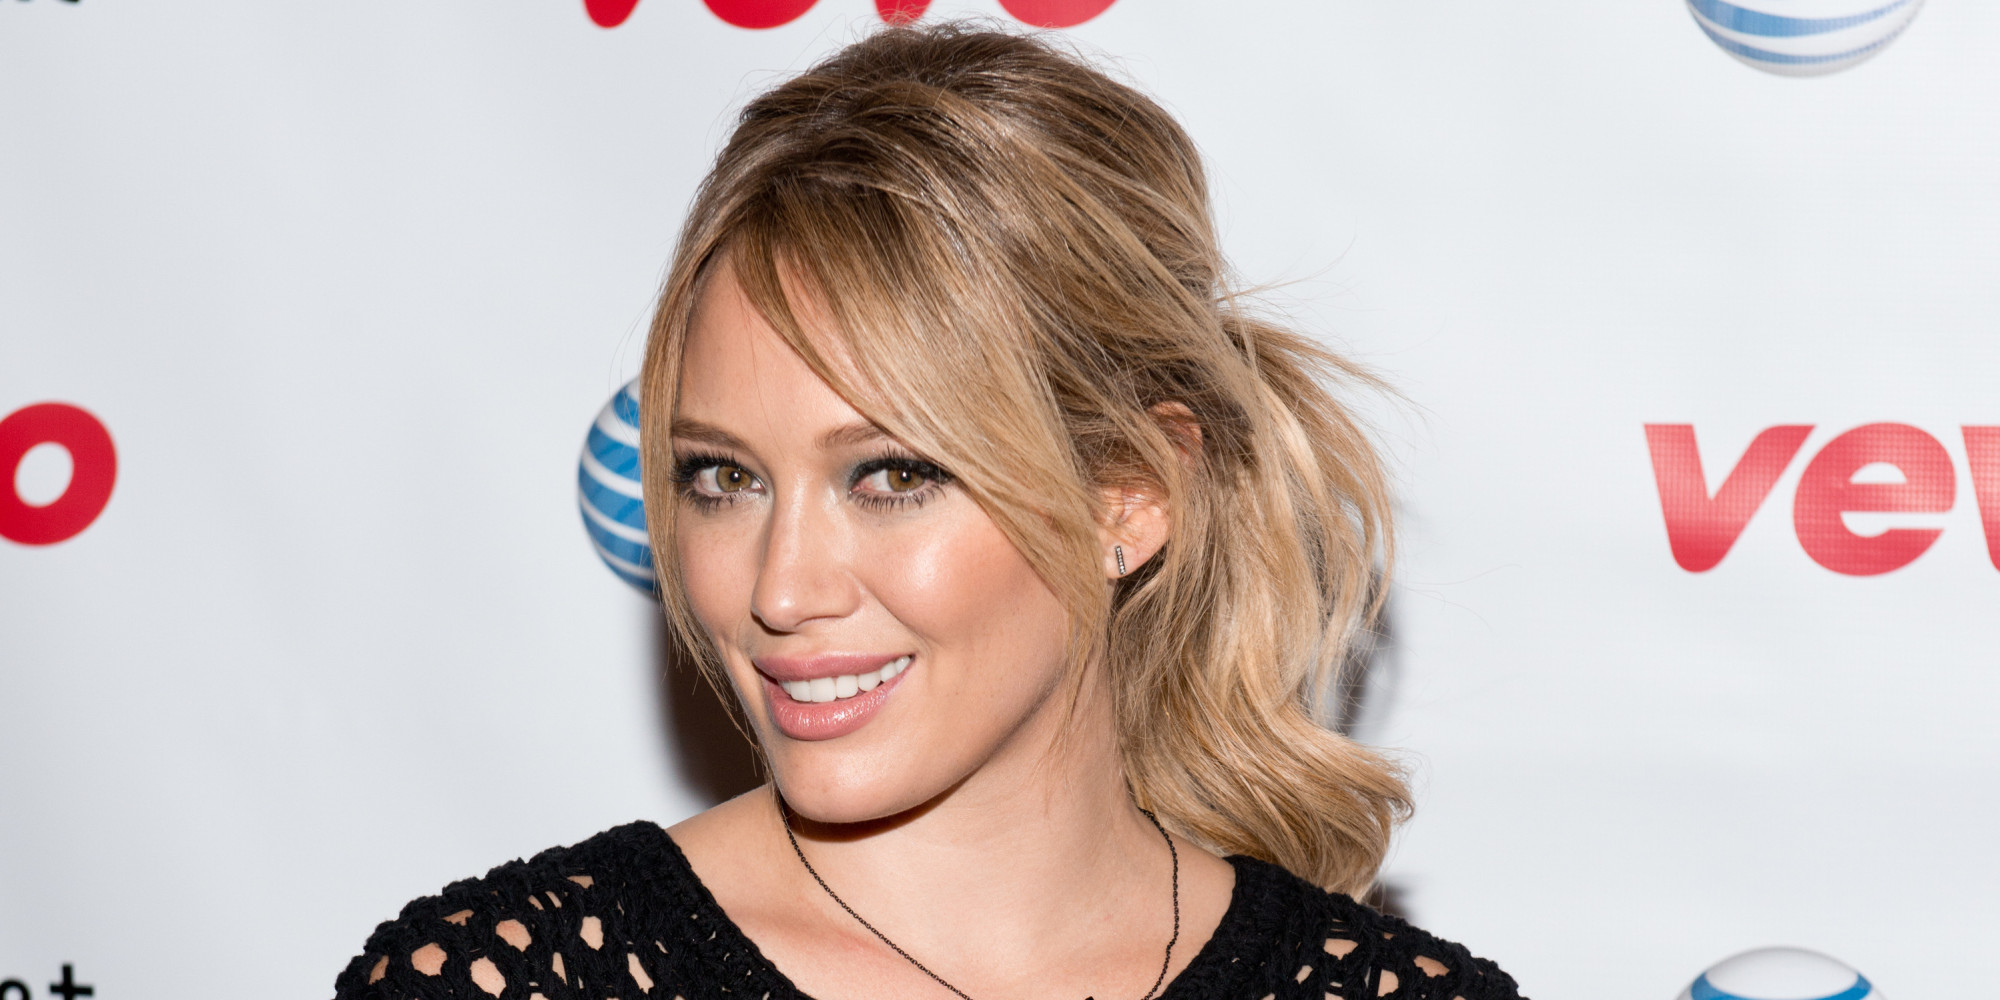 Hilary Duff Turns Heads At The 'All About You' Premiere Party Hilary Duff Facebook